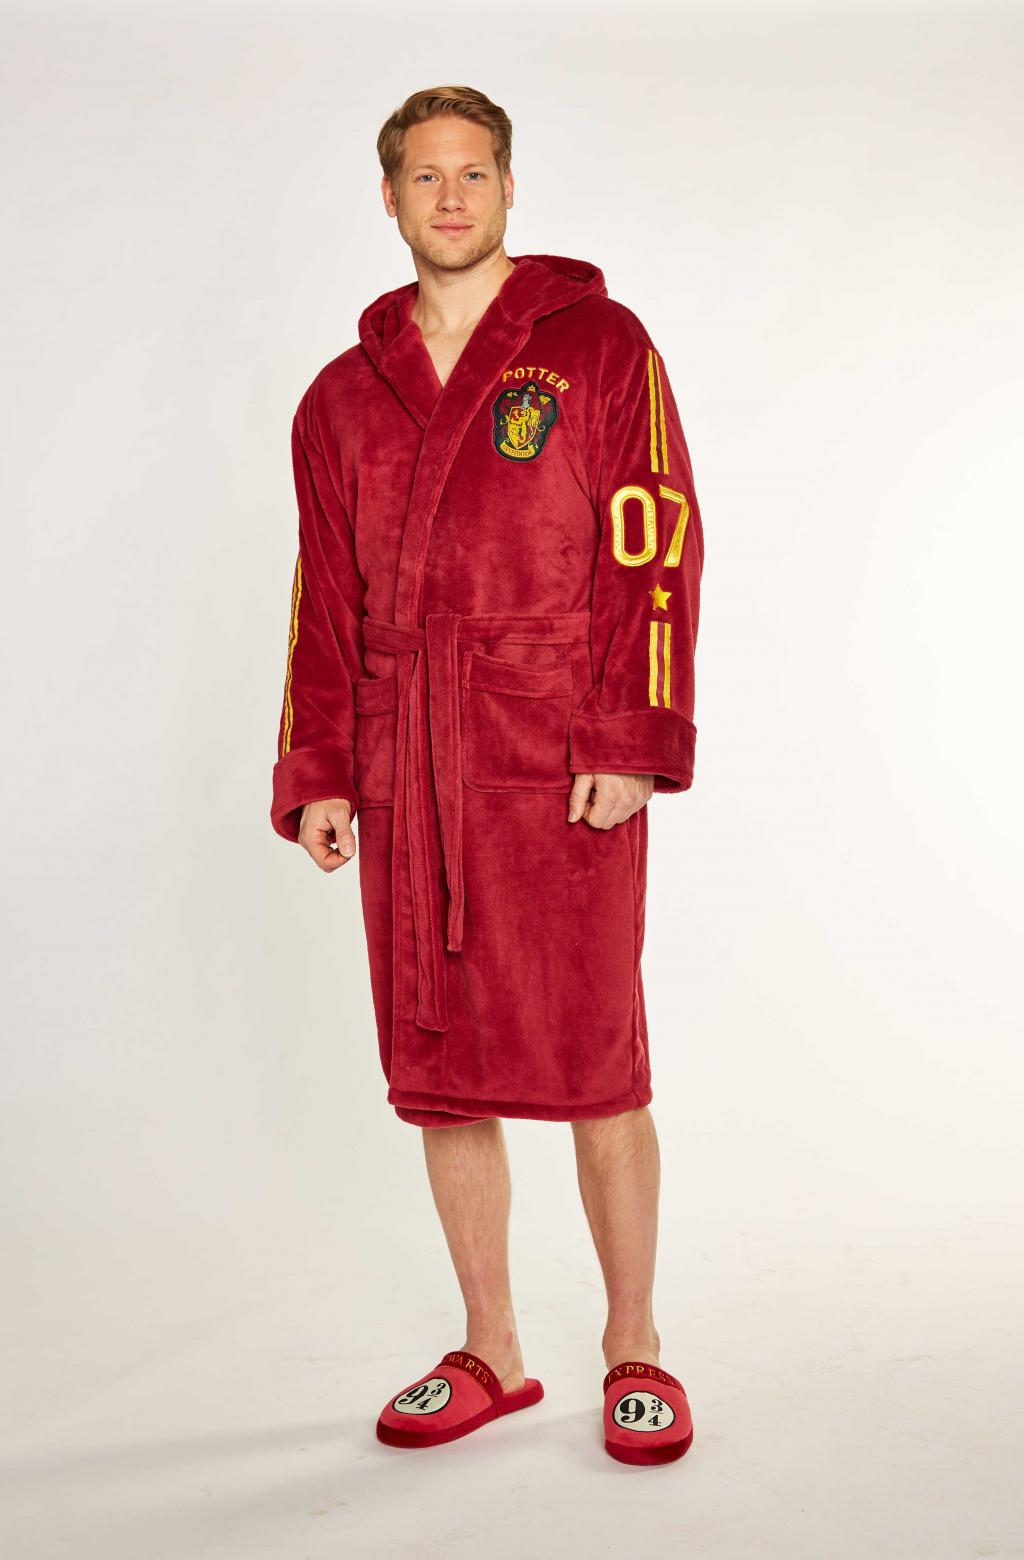 HARRY POTTER - Peignoir Homme - Quidditch - Adulte - Taille Unique